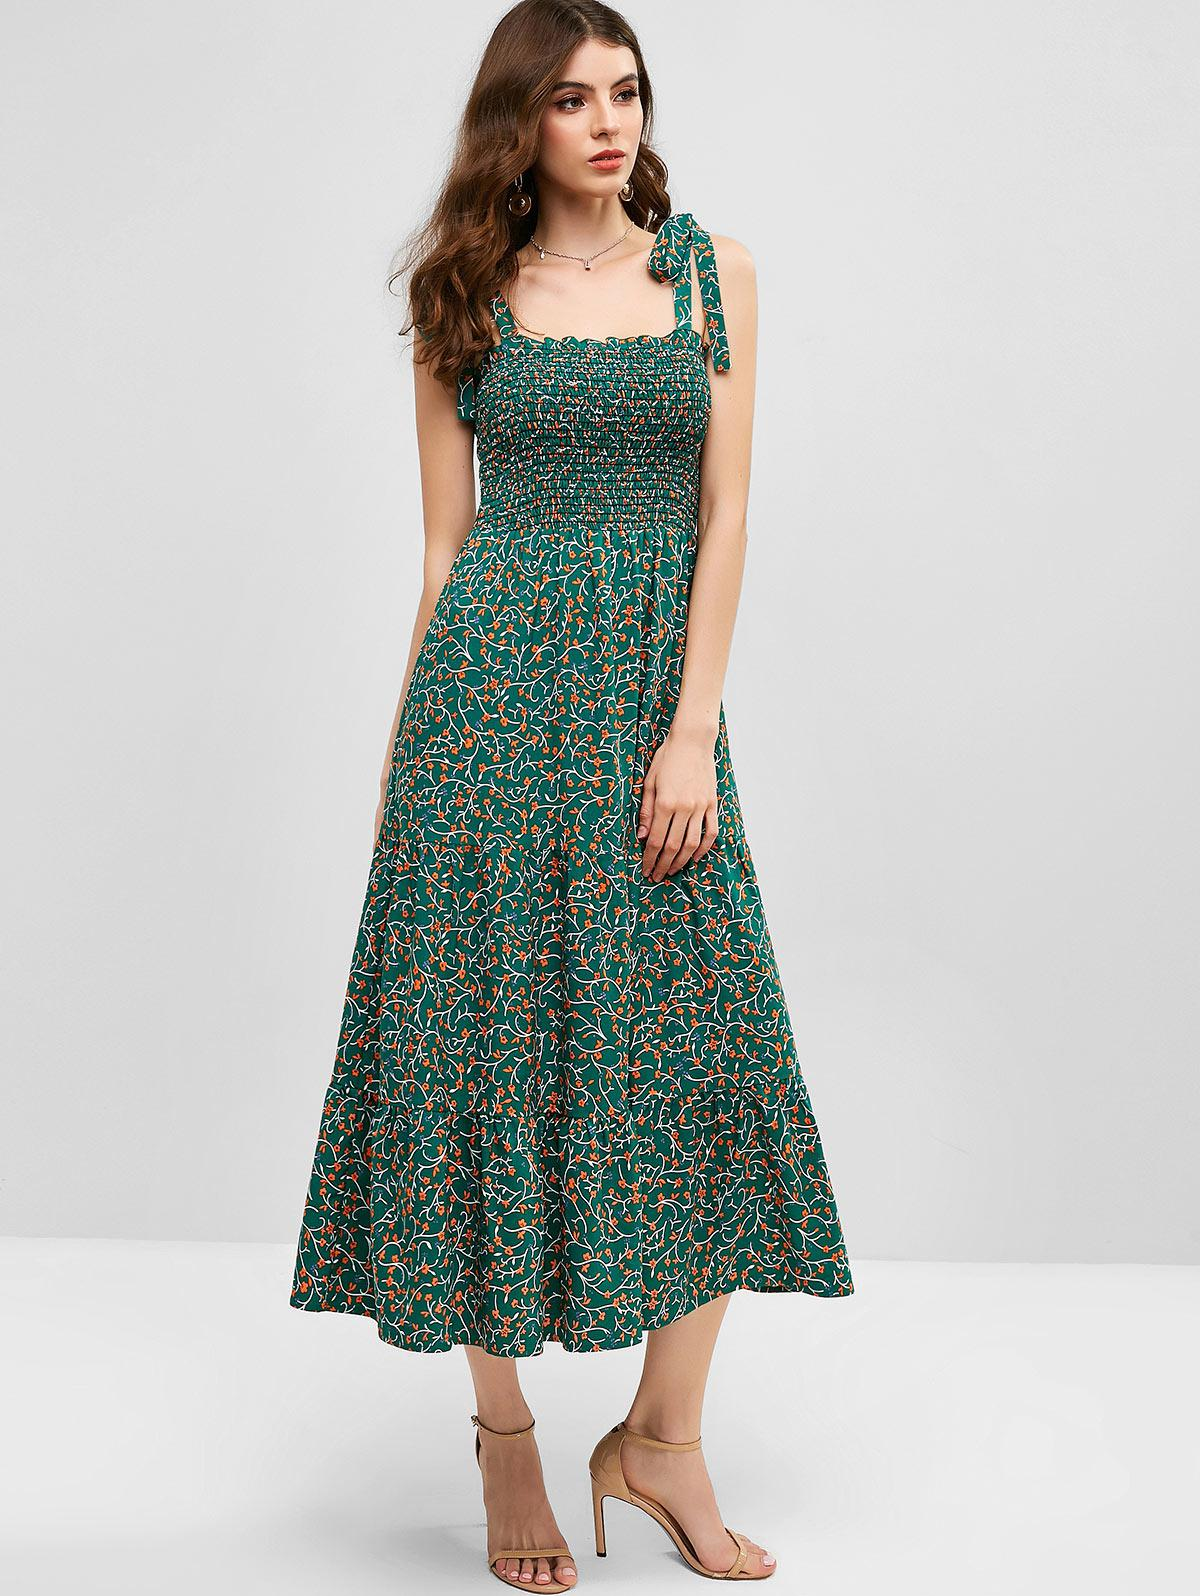 ZAFUL Ditsy Floral Tie Shoulder Smocked Midi Dress, Greenish blue